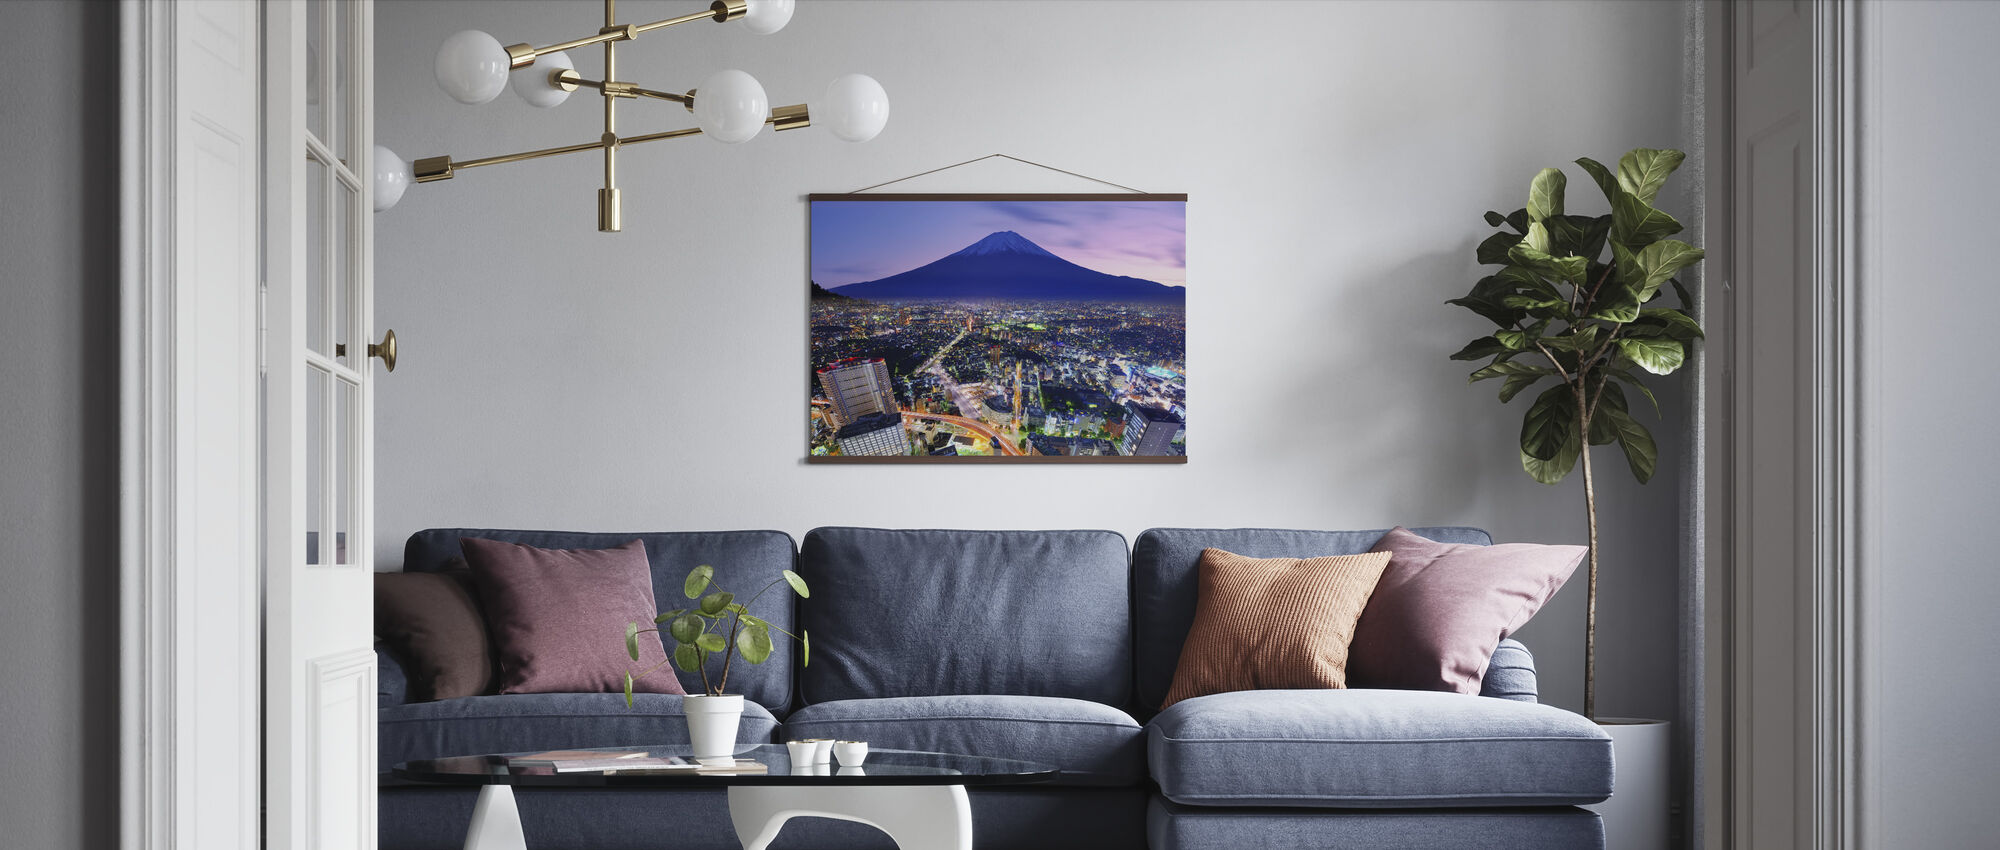 Ueno District and Mt. Fuji in Tokyo, Japan - Poster - Living Room